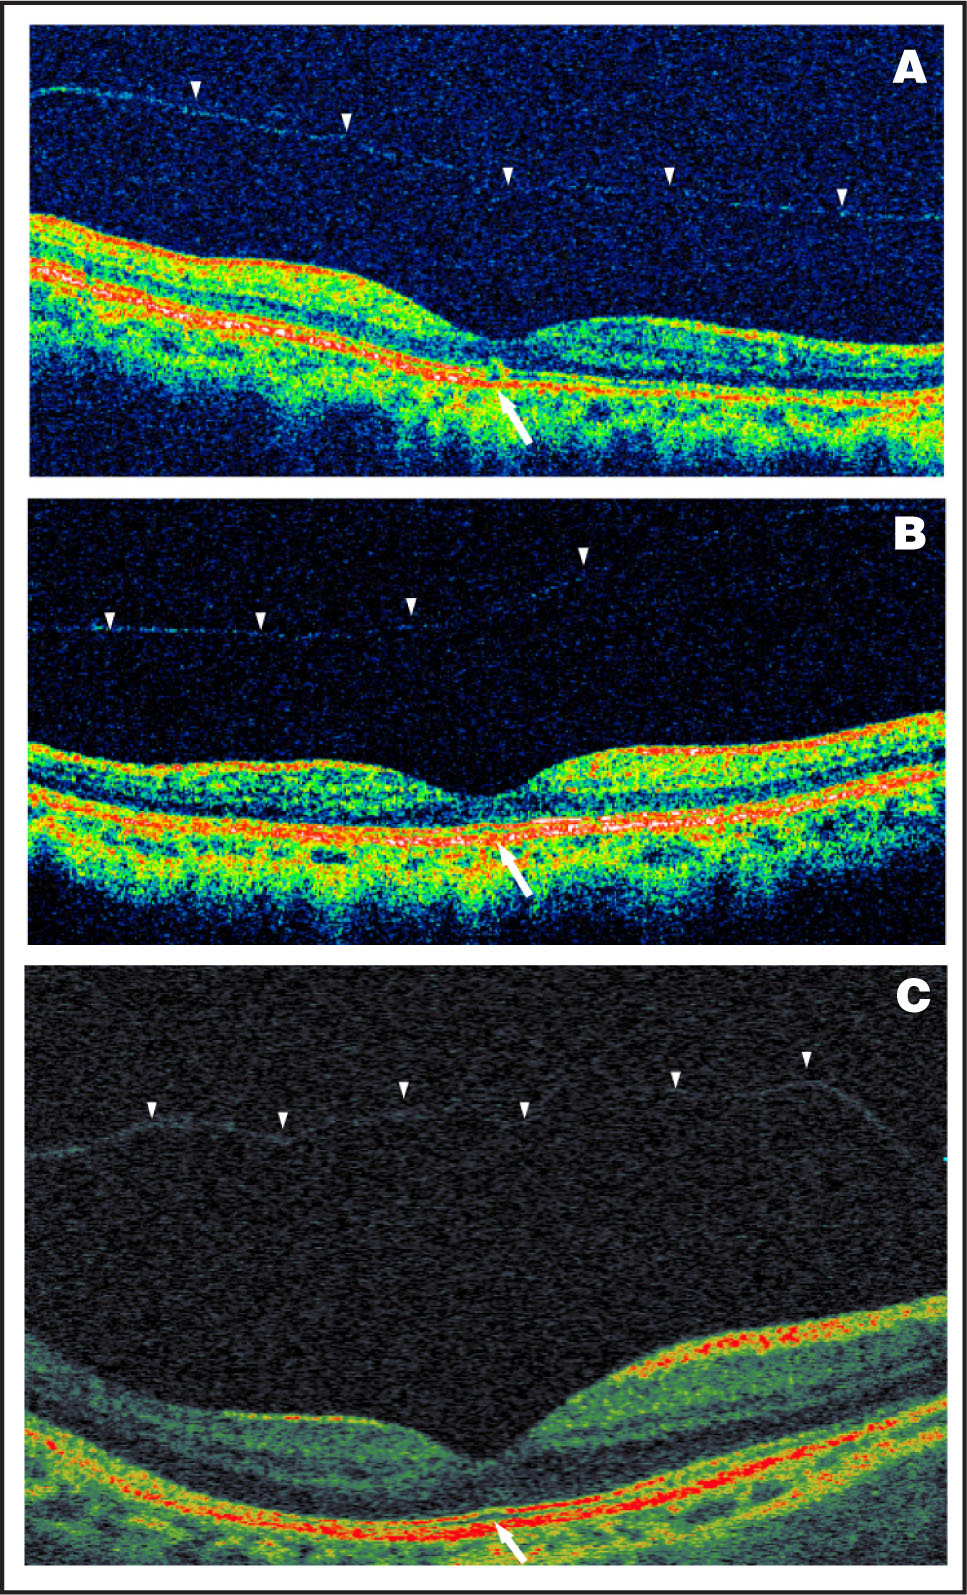 Images Obtained During Follow-Up. (A) One Month Later, OCT 3 Shows a Small Outer Retinal Defect (arrow) and the Faint Reflectivity of the Vitreomacular Detachment (arrowheads). (B) Six Months After the Initial Visit, OCT 3 Shows that the Outer Retinal Defect has Disappeared (arrow) with Faint Reflectivity Seen as a Thin Line of Complete Vitreomacular Separation (arrowheads). (C) Six Months After the Initial Visit, OCT Ophthalmoscope Shows that the Photoreceptor Layer Abnormality has Disappeared (arrow), with Faint Dome-Shaped Reflectivity Appearing as a Thin Line of Complete Vitreomacular Separation (arrowheads).